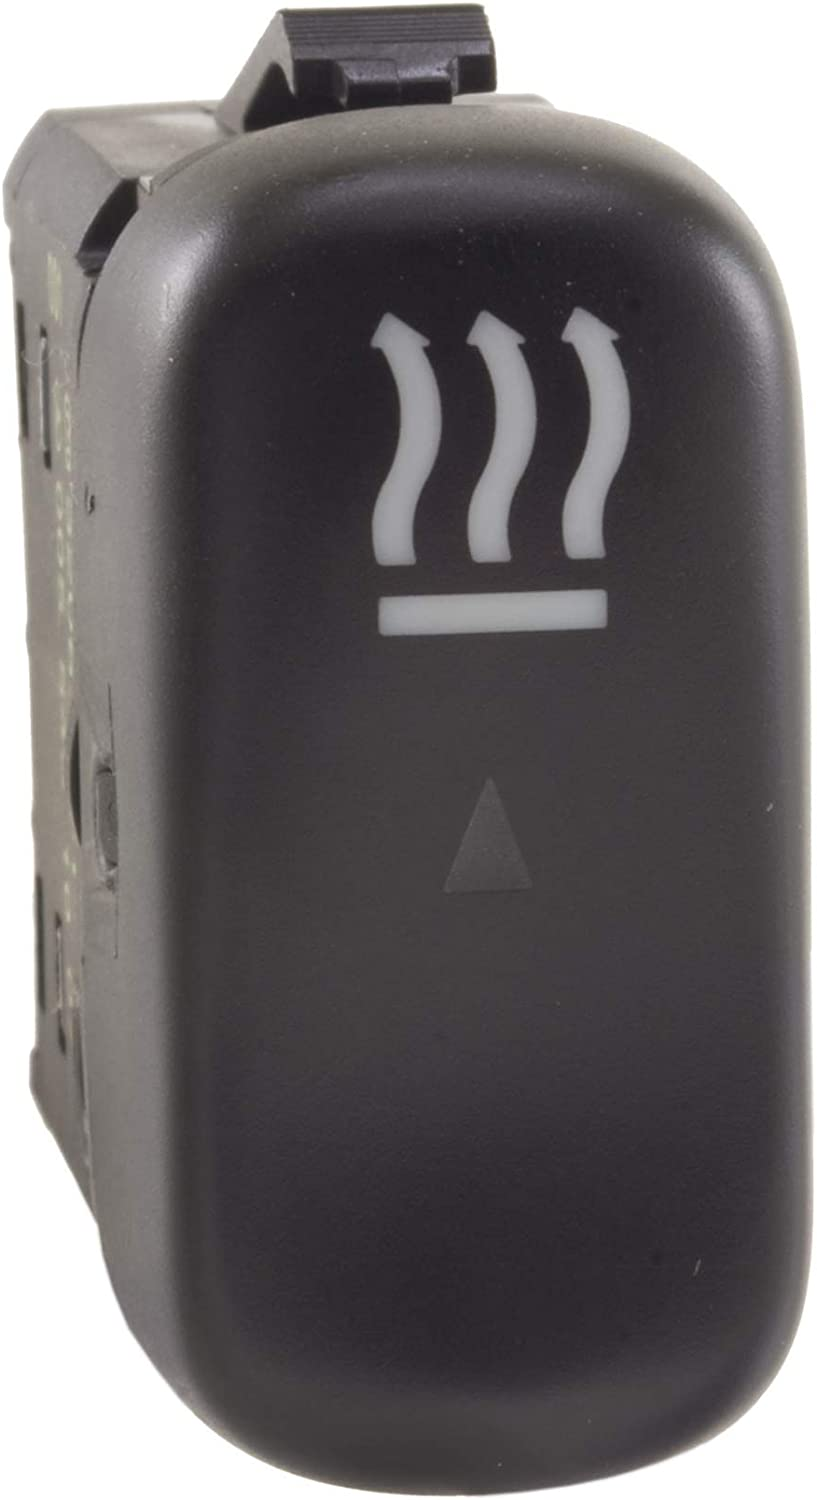 WVE by NTK Special sale item Louisville-Jefferson County Mall 1S8878 HVAC Switch Pack 1 Control Blower